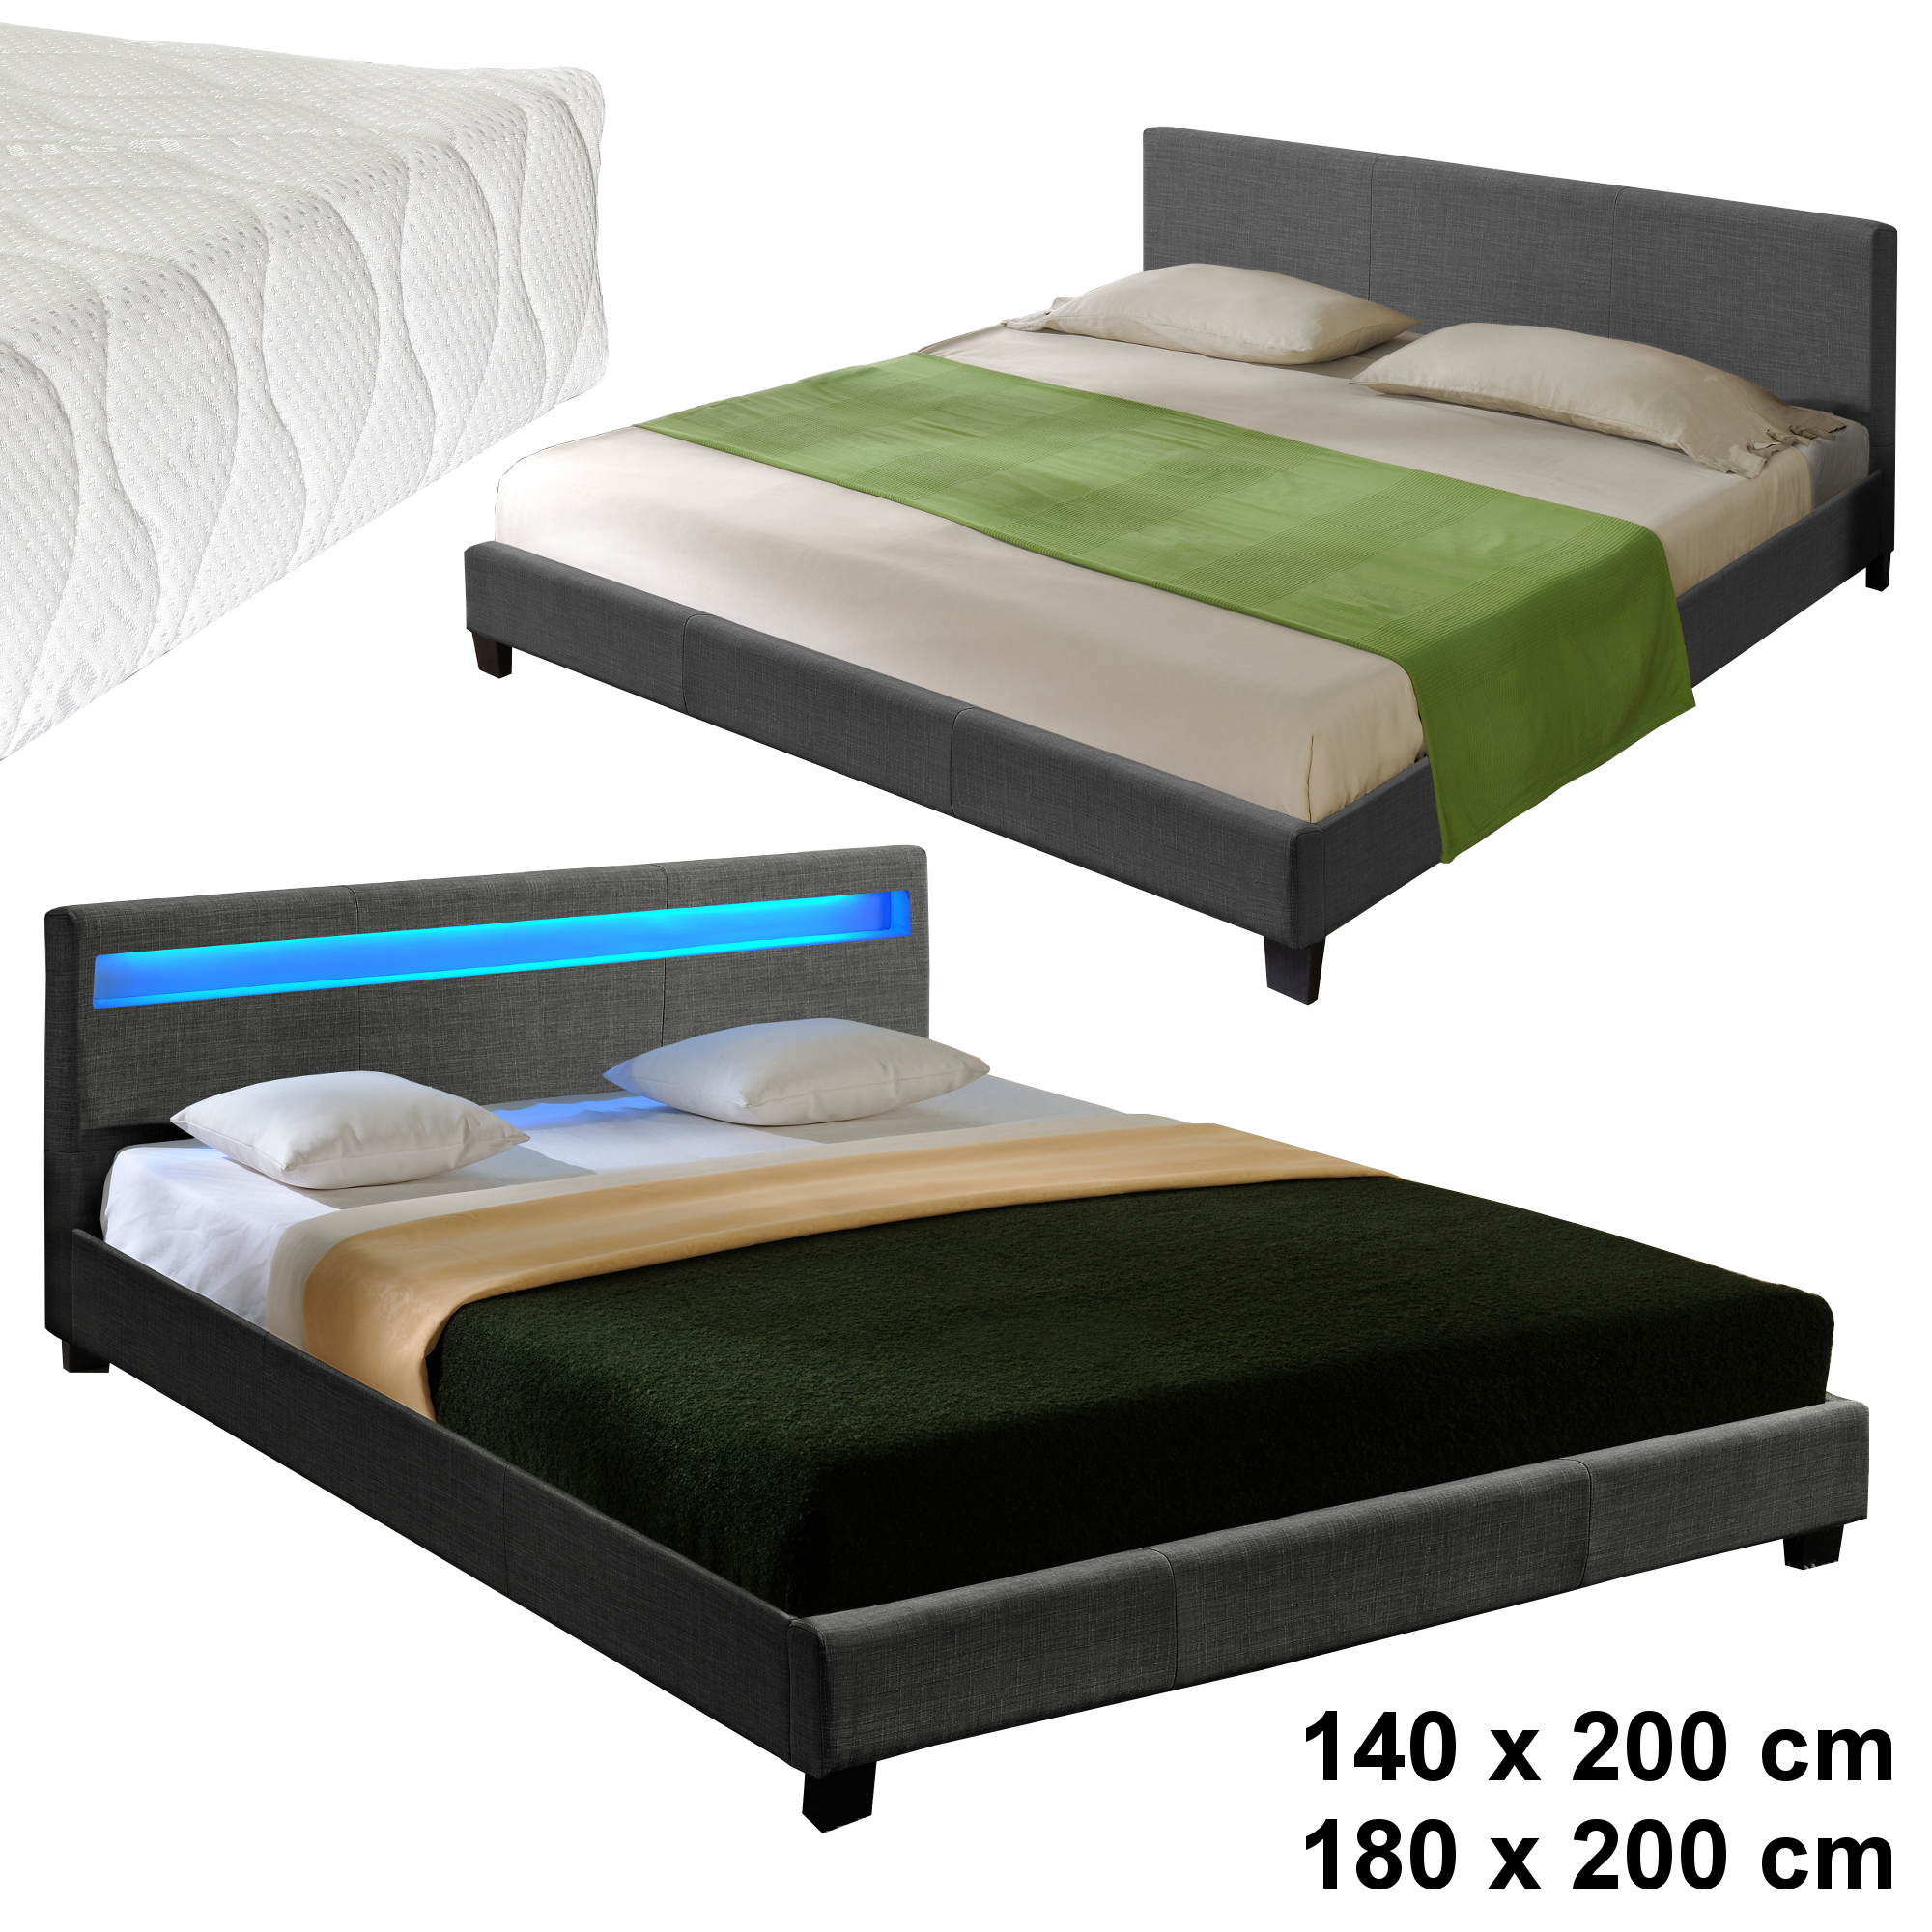 corium textil doppelbett led polsterbett 140 180 x 200cm bettgestell bett stoff ebay. Black Bedroom Furniture Sets. Home Design Ideas